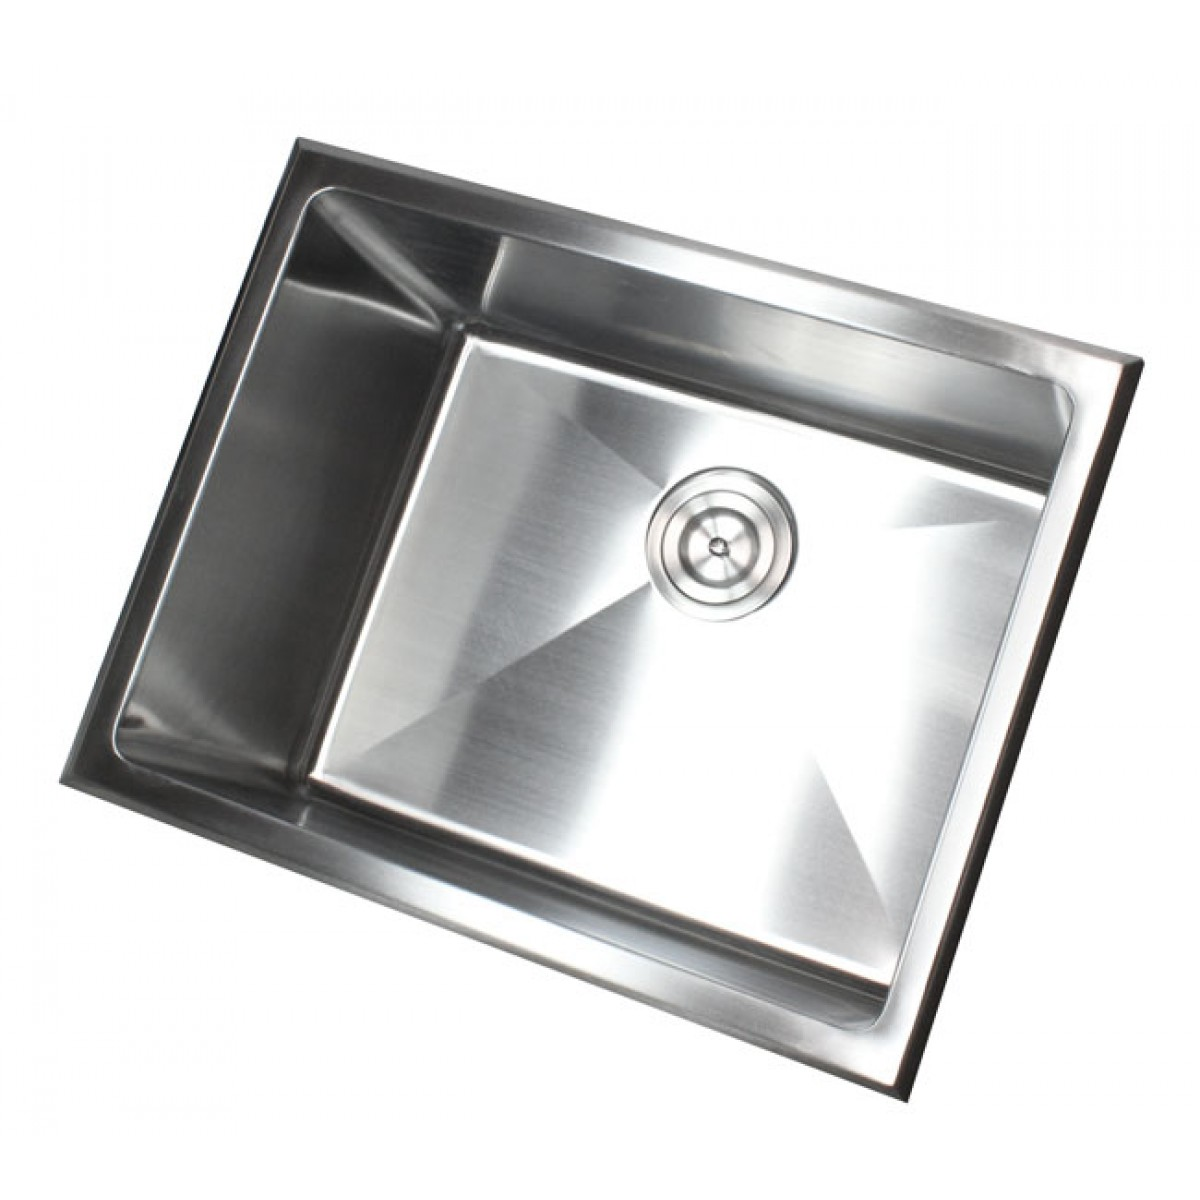 23 Inch Drop In Stainless Steel Single Bowl Kitchen / Utility / Laundry Sink  15mm Radius Design